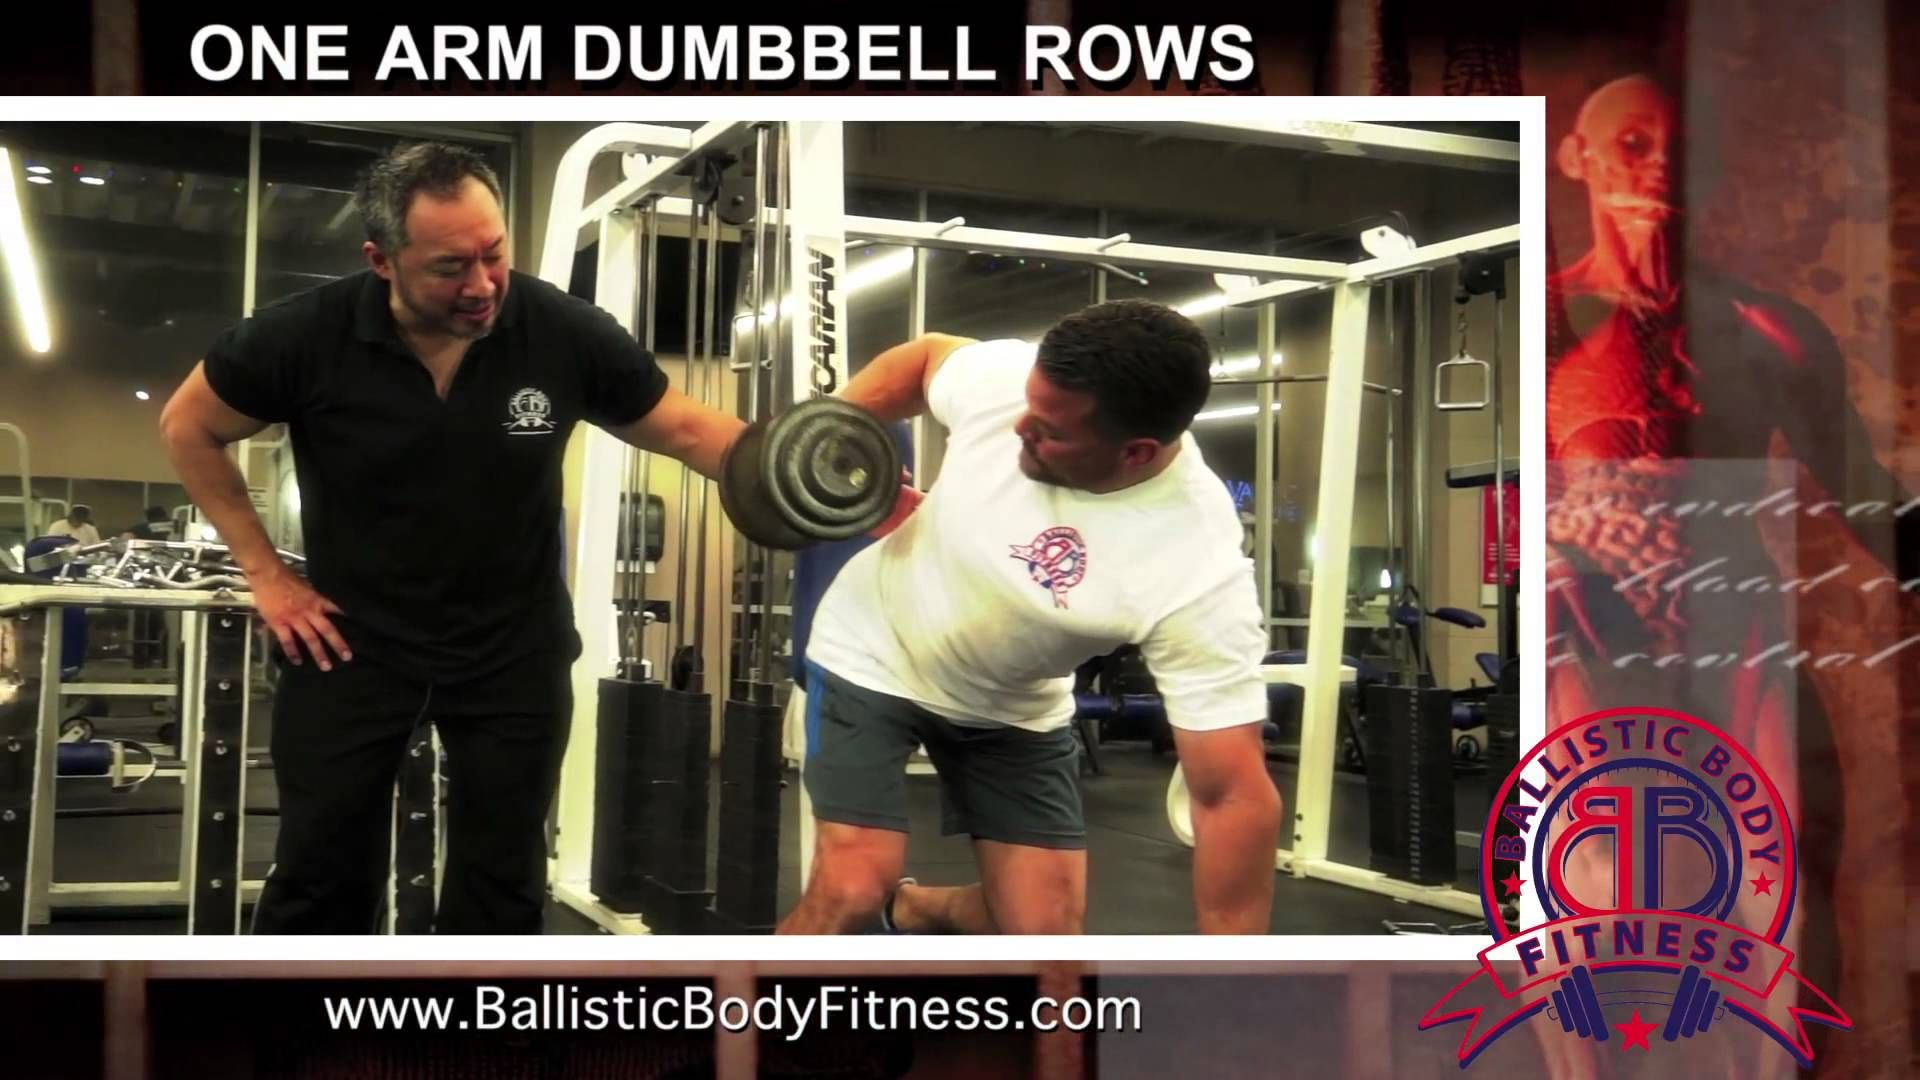 One Arm Dumbbell Rows for back - BBF 90 Day Fitness Challenge Instruction Video #39.  Ballistic Body Fitness / Personal Trainer Burbank